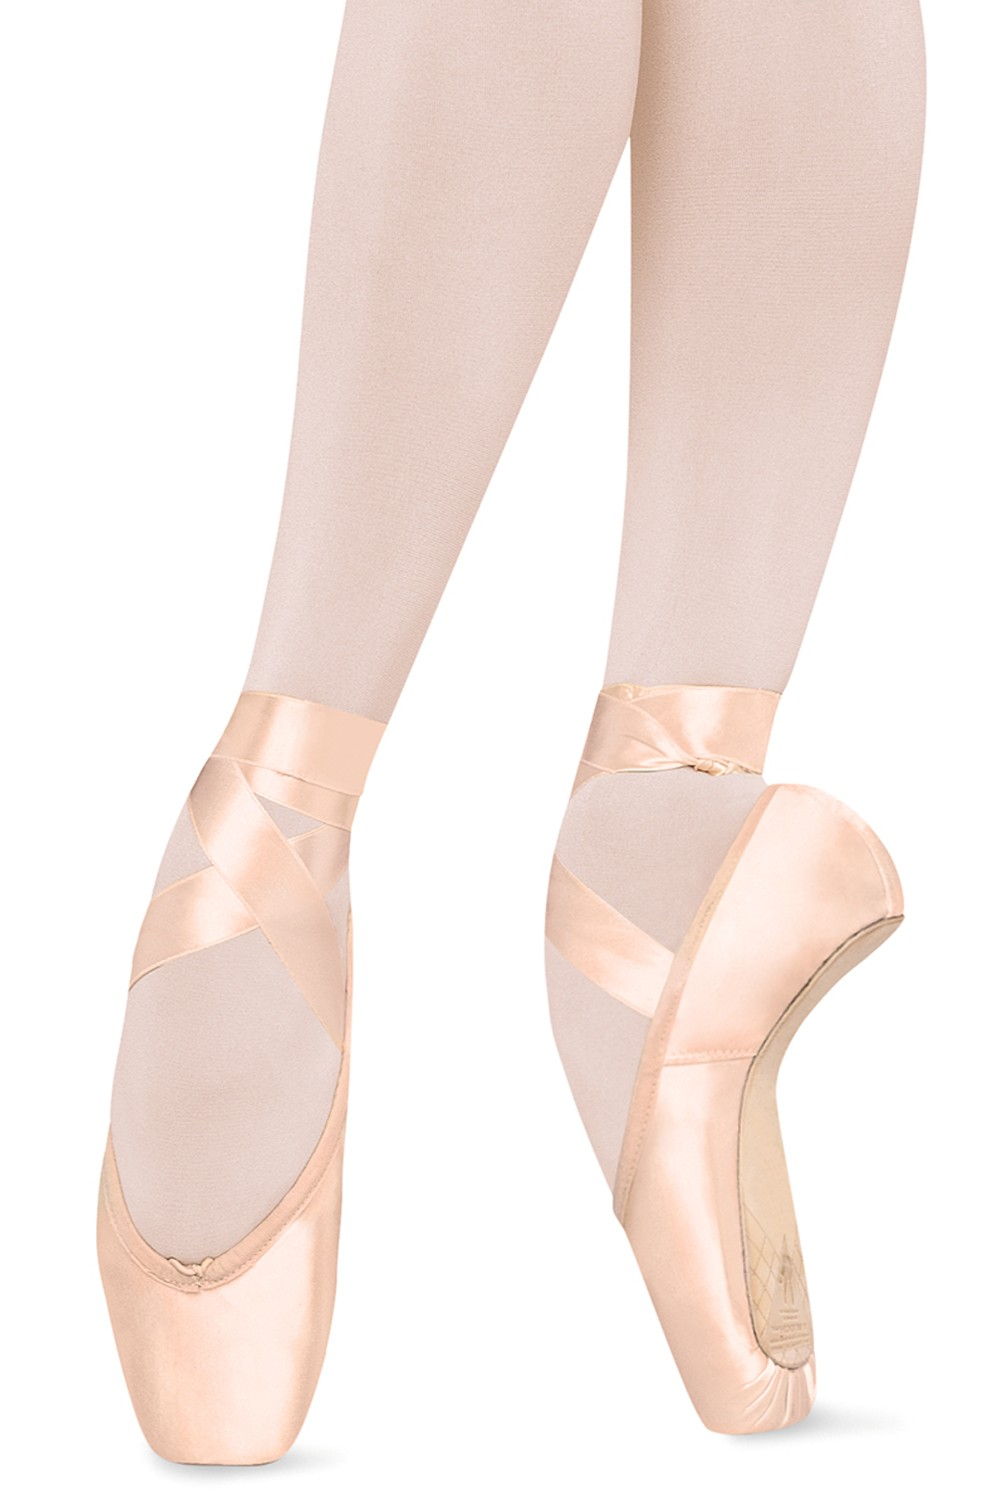 Sonata Pointe Shoes